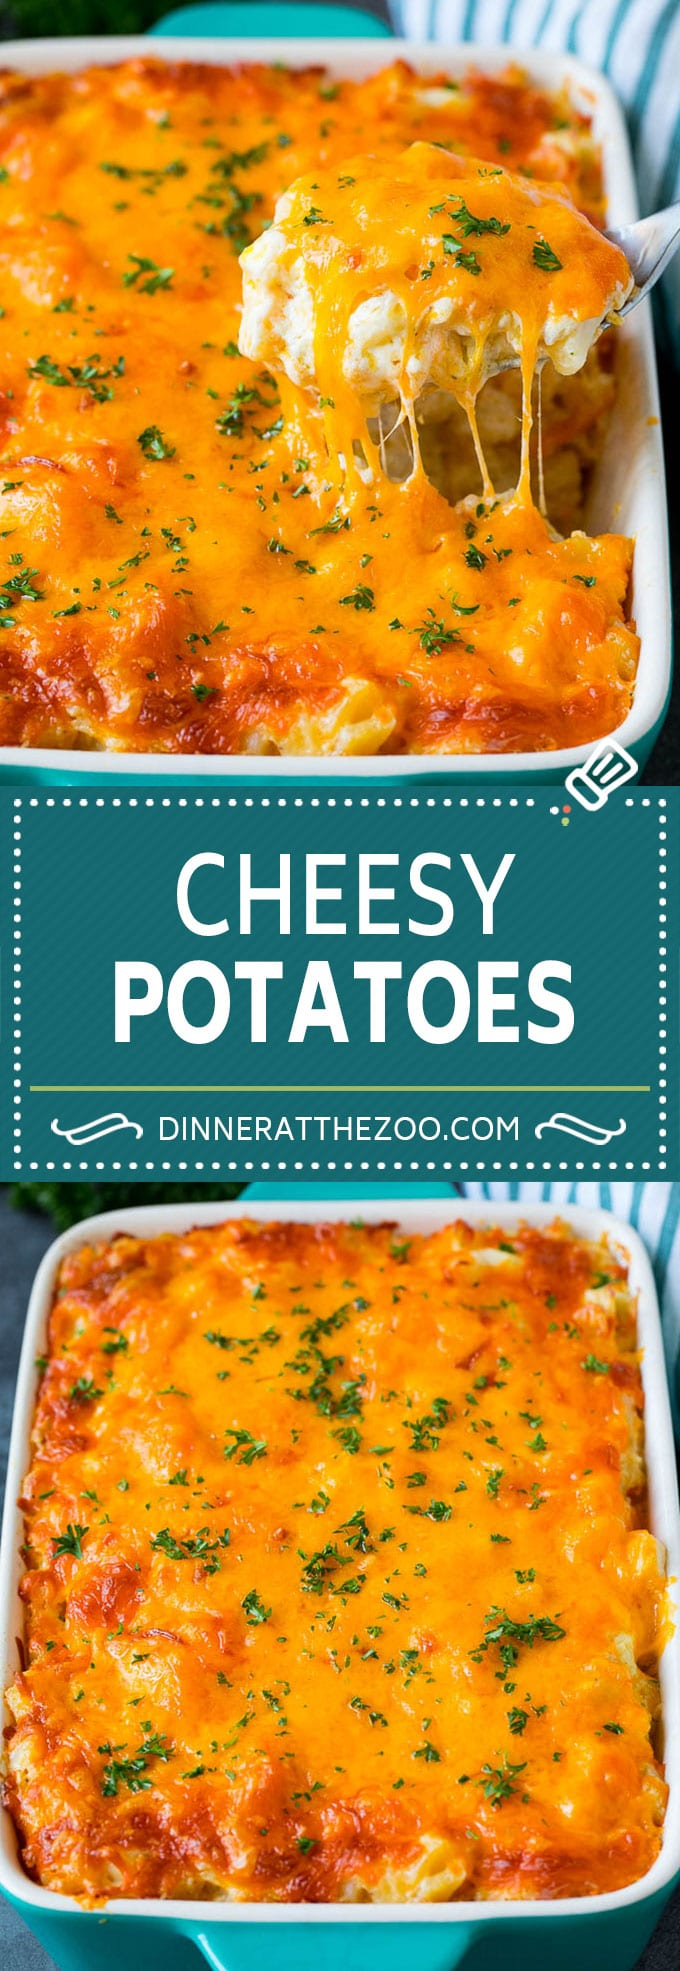 These cheesy potatoes are diced potatoes tossed in a creamy blend of sour cream, butter and cheese, then baked to golden brown perfection.